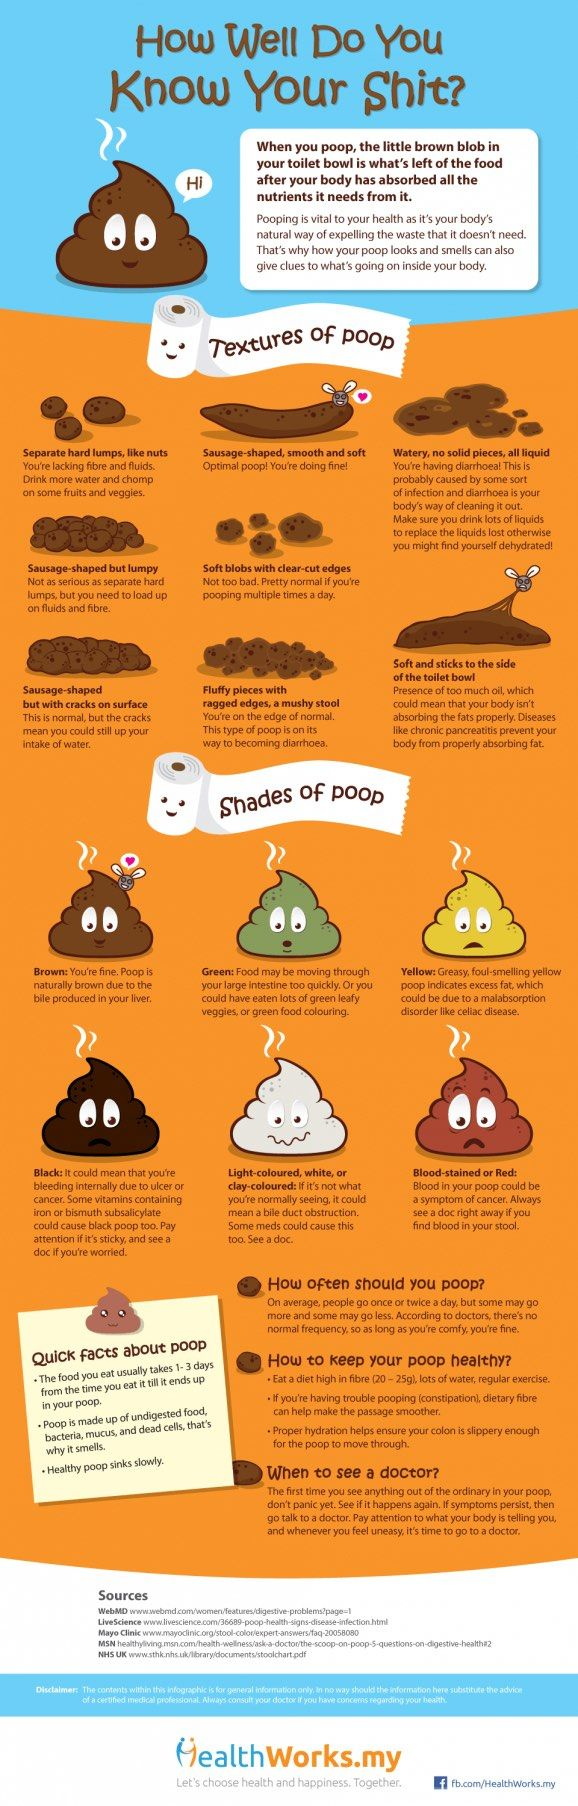 Although your poo is leaving your body, those fecal bits can actually tell you quite a lot about the health of your digestive system.